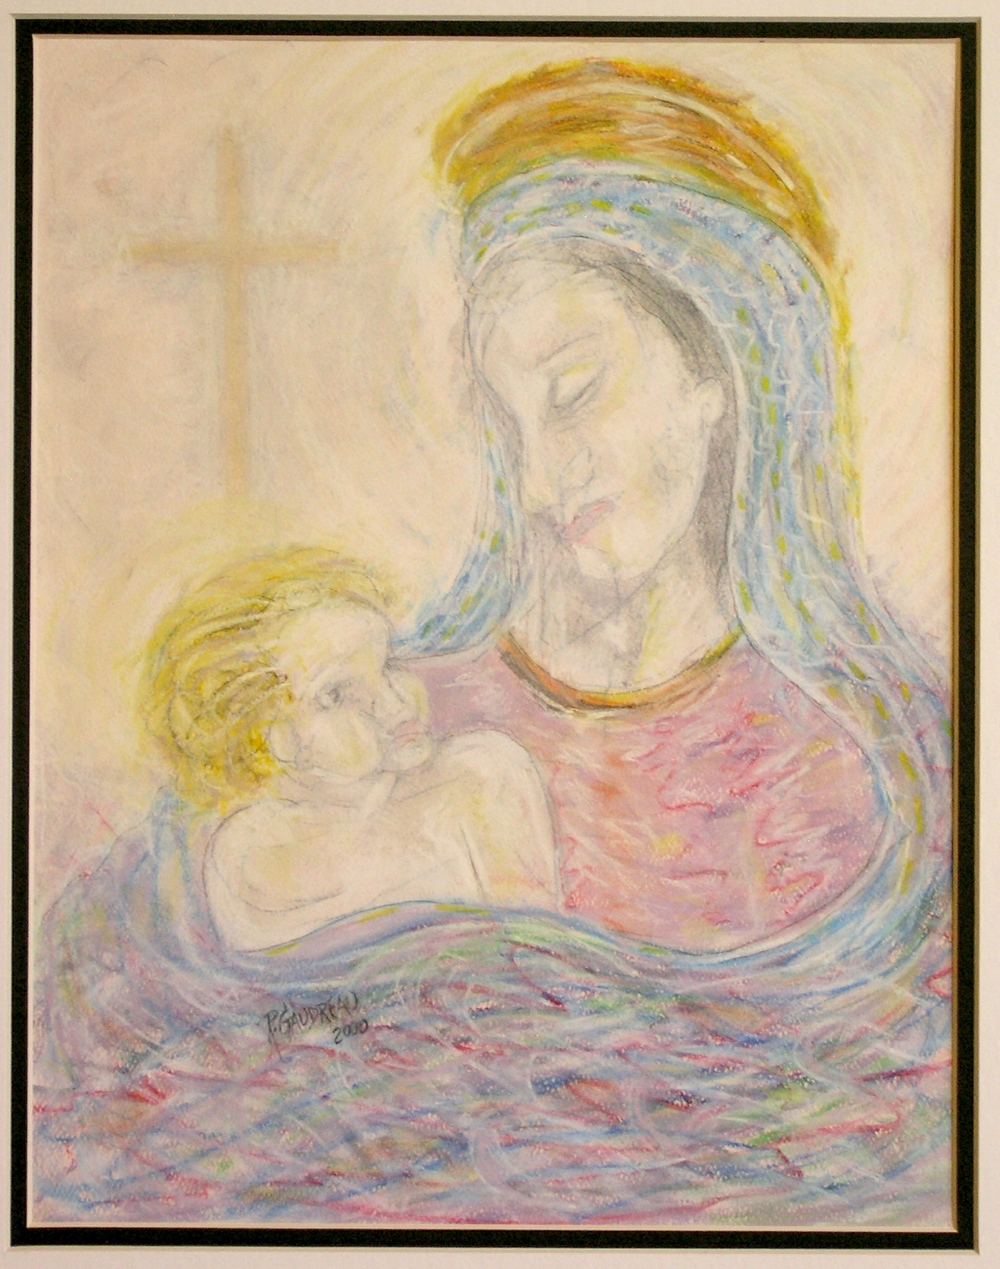 Baby Jesus and his Future 2000 pastel, charcoal on paper 14 x 11 inches